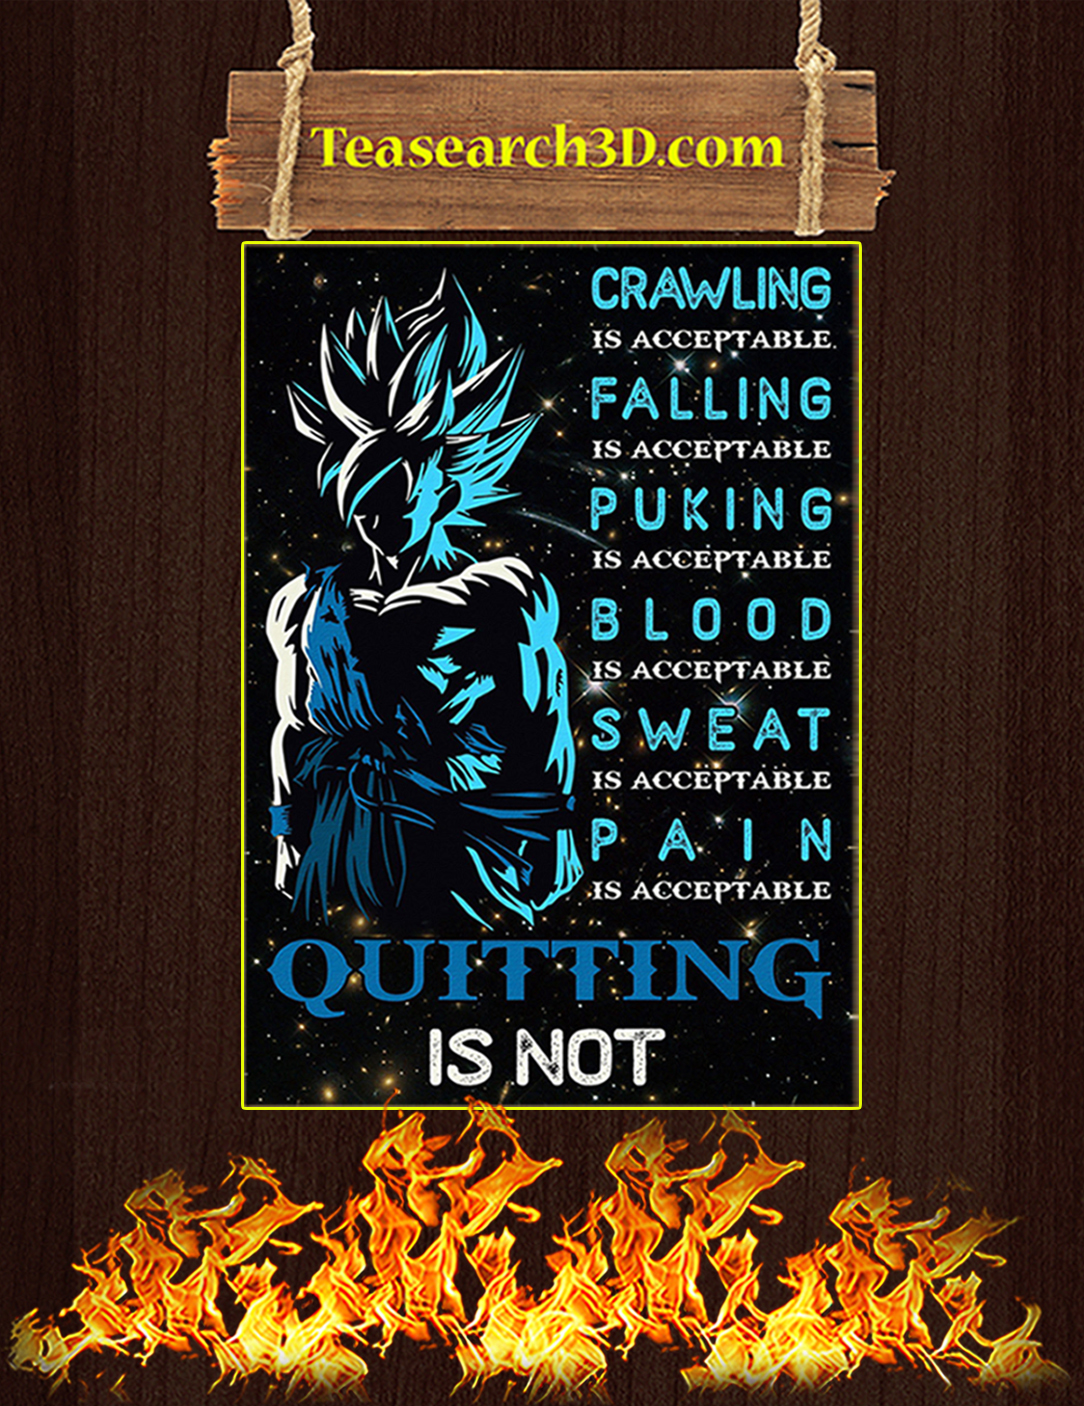 Quitting is not goku dragon ball poster A2